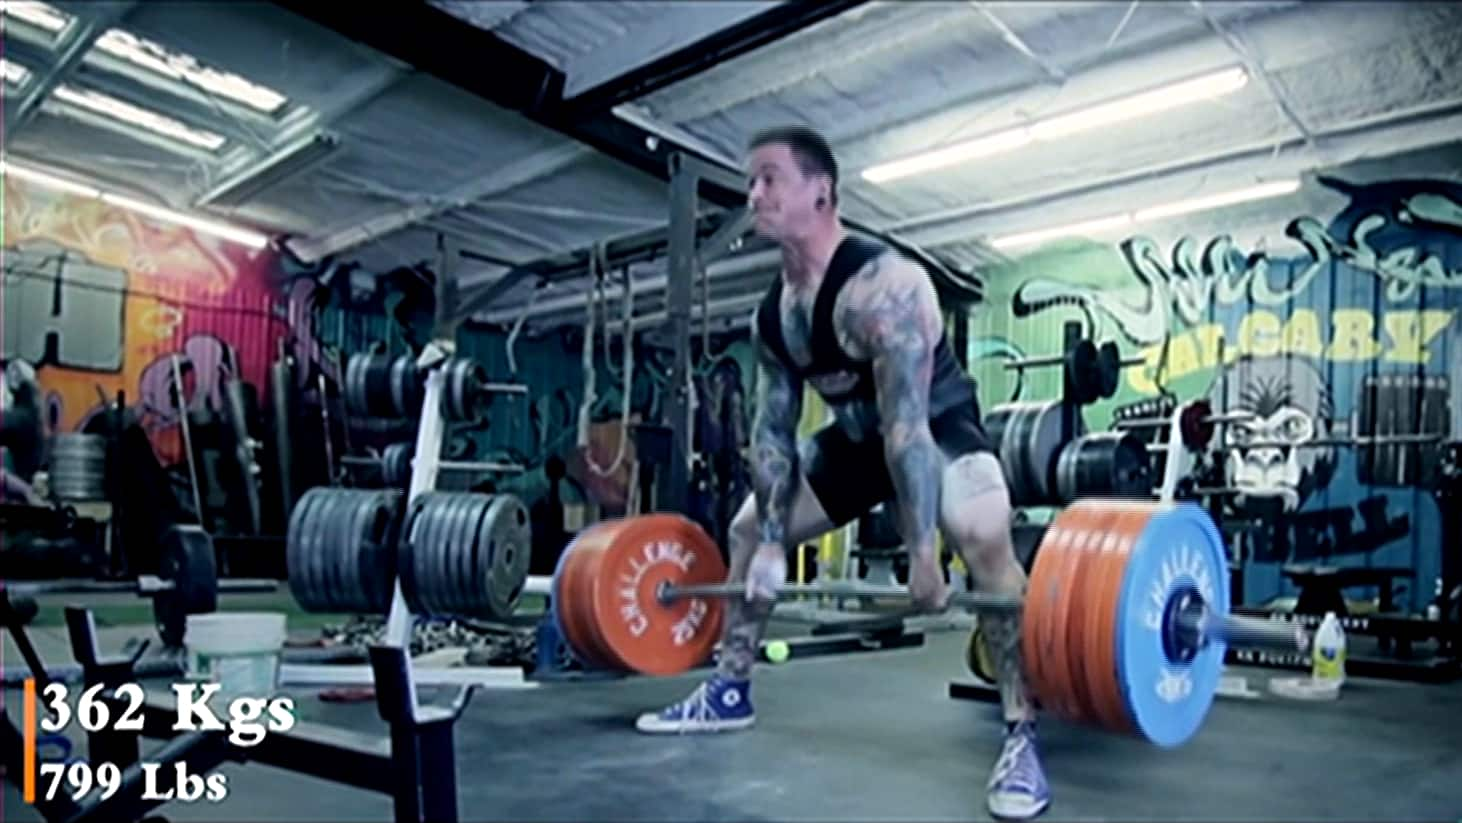 Watch Bryce Krawczyk unofficially tie a world record with a 362-kg deadlift